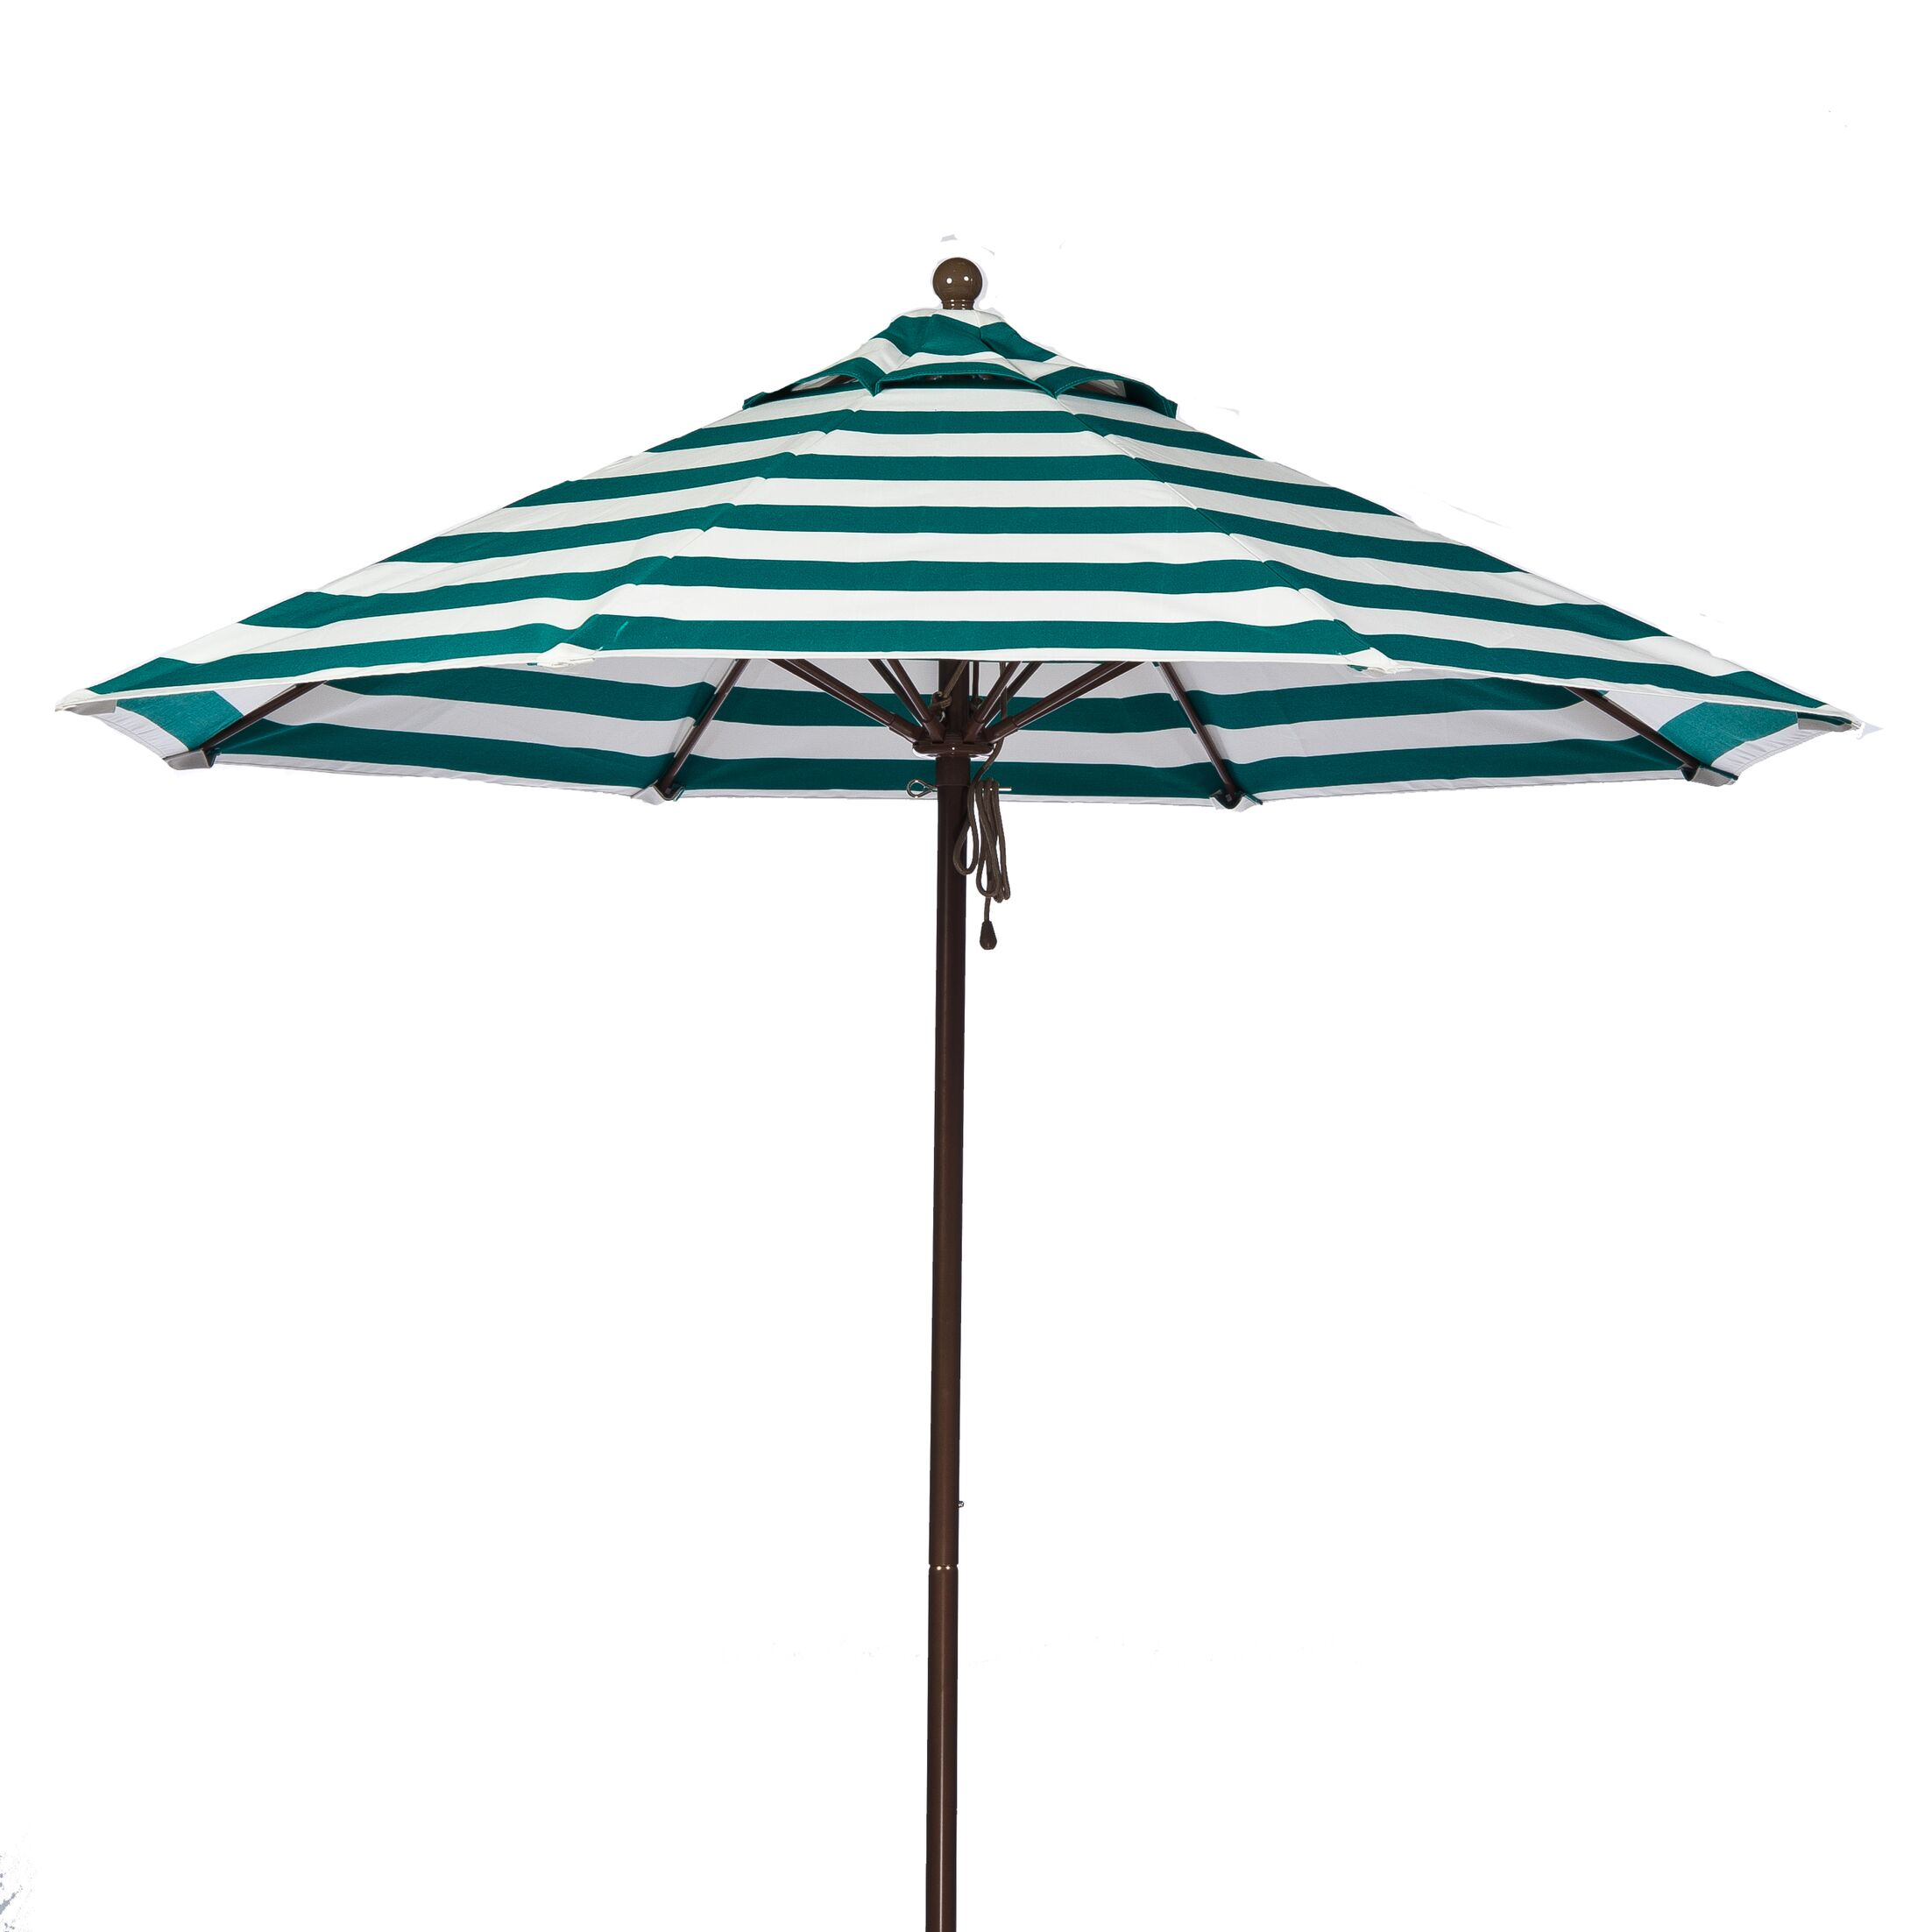 9' Market Umbrella Fabric: Teal and White Stripe, Pole Type: Bronze Coated Aluminum Pole